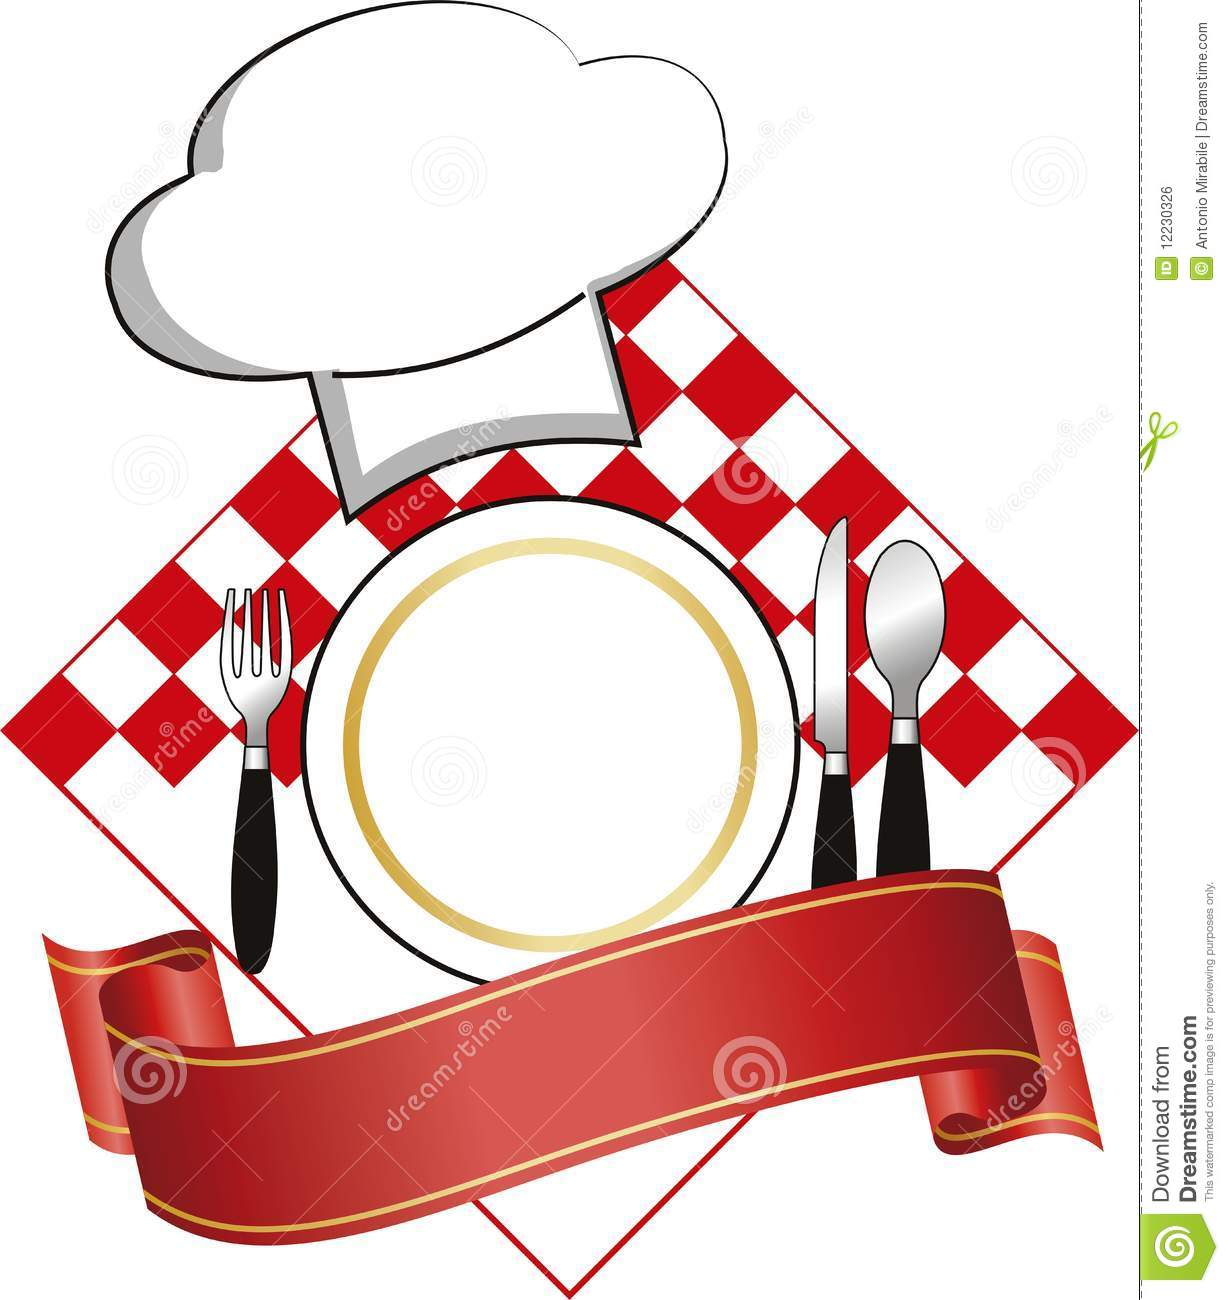 restaurant symbols clip art - photo #32